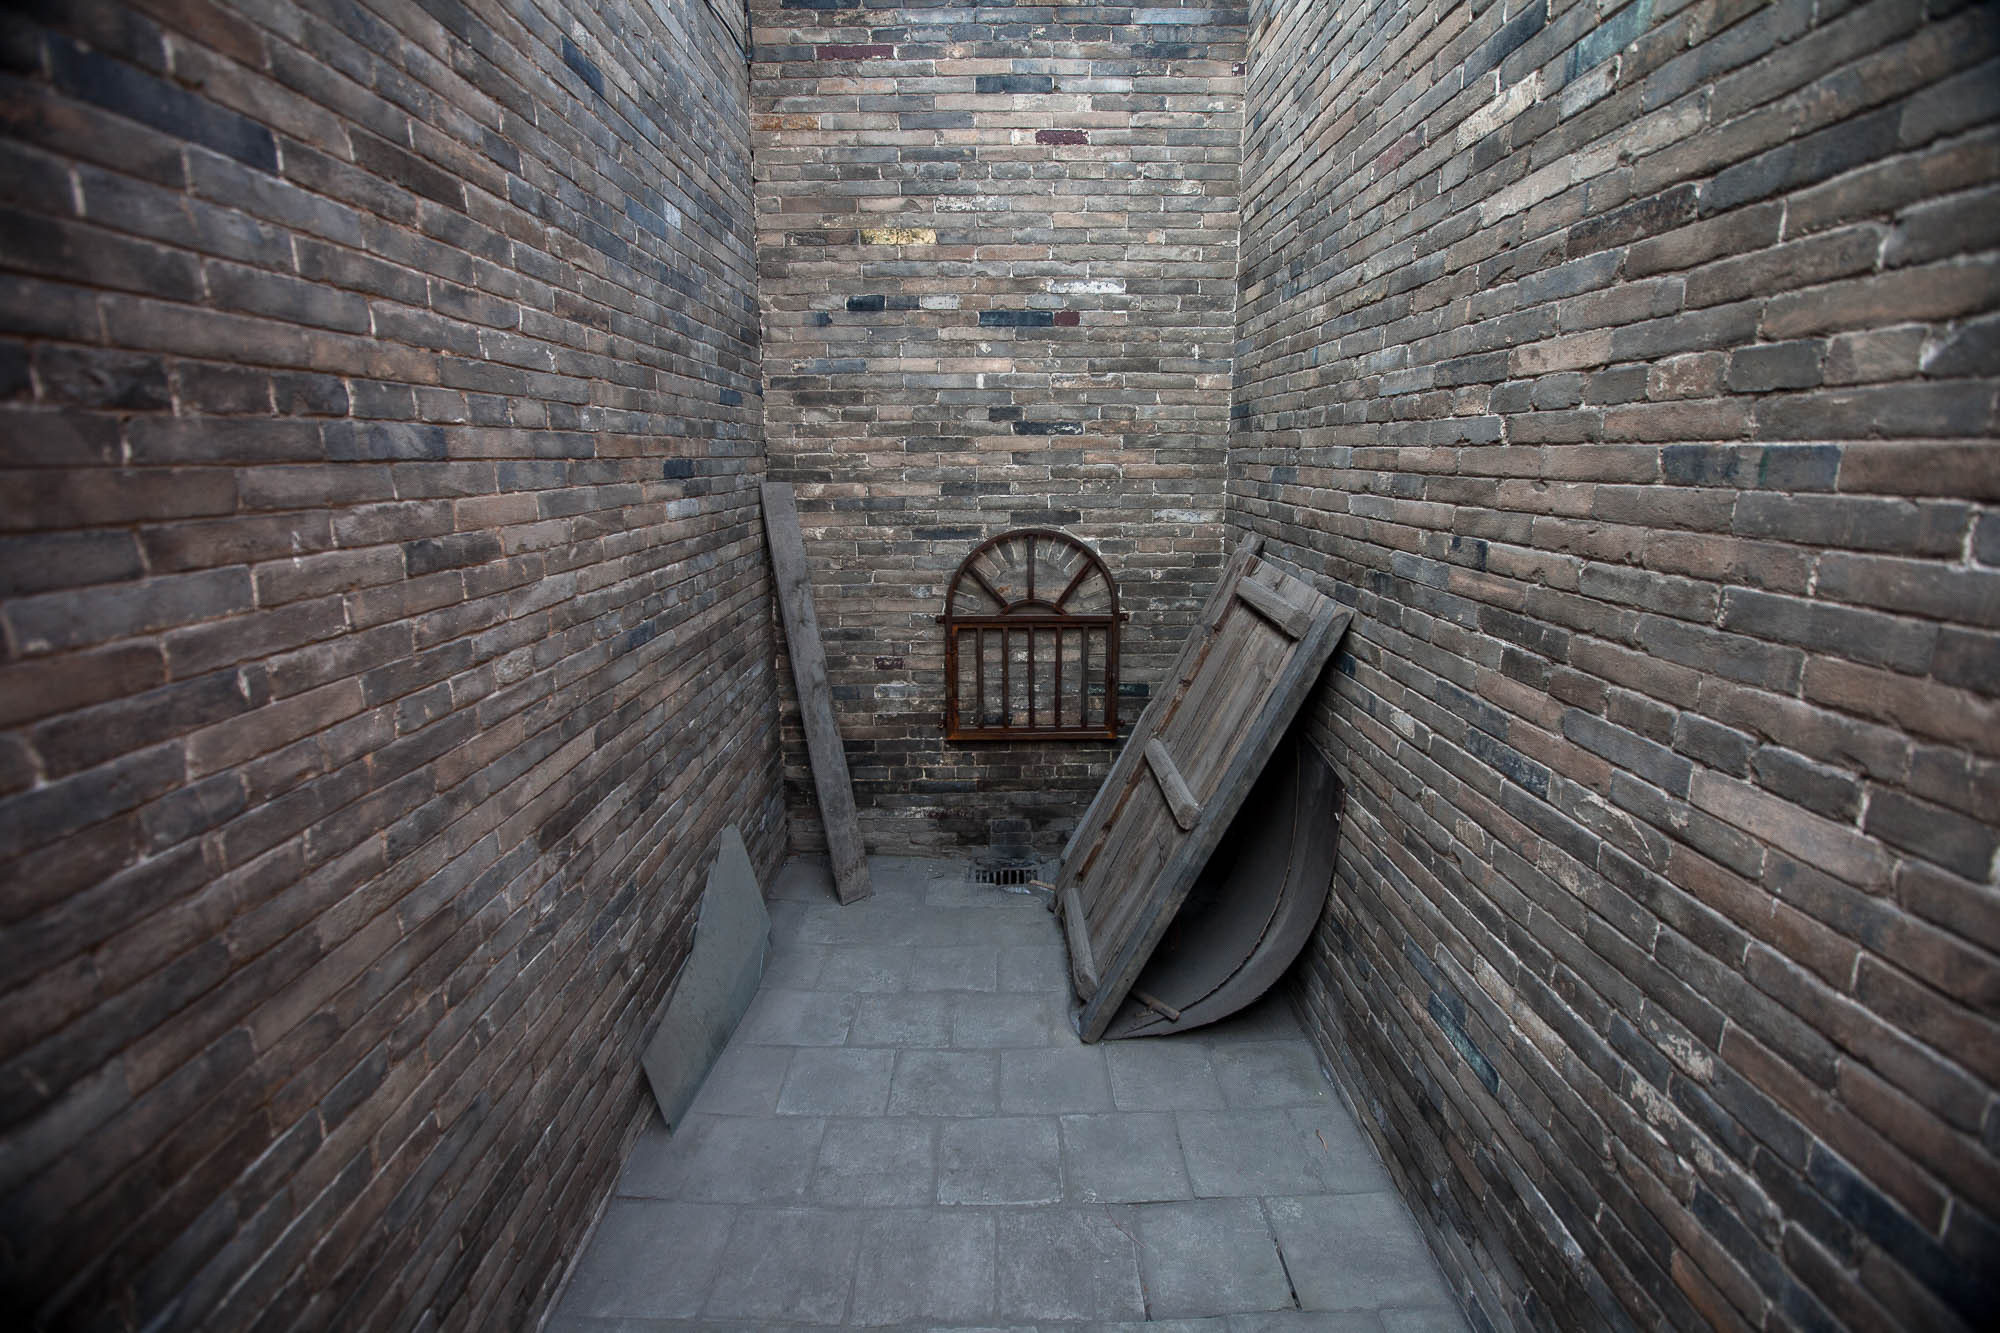 exit of the ancient prison